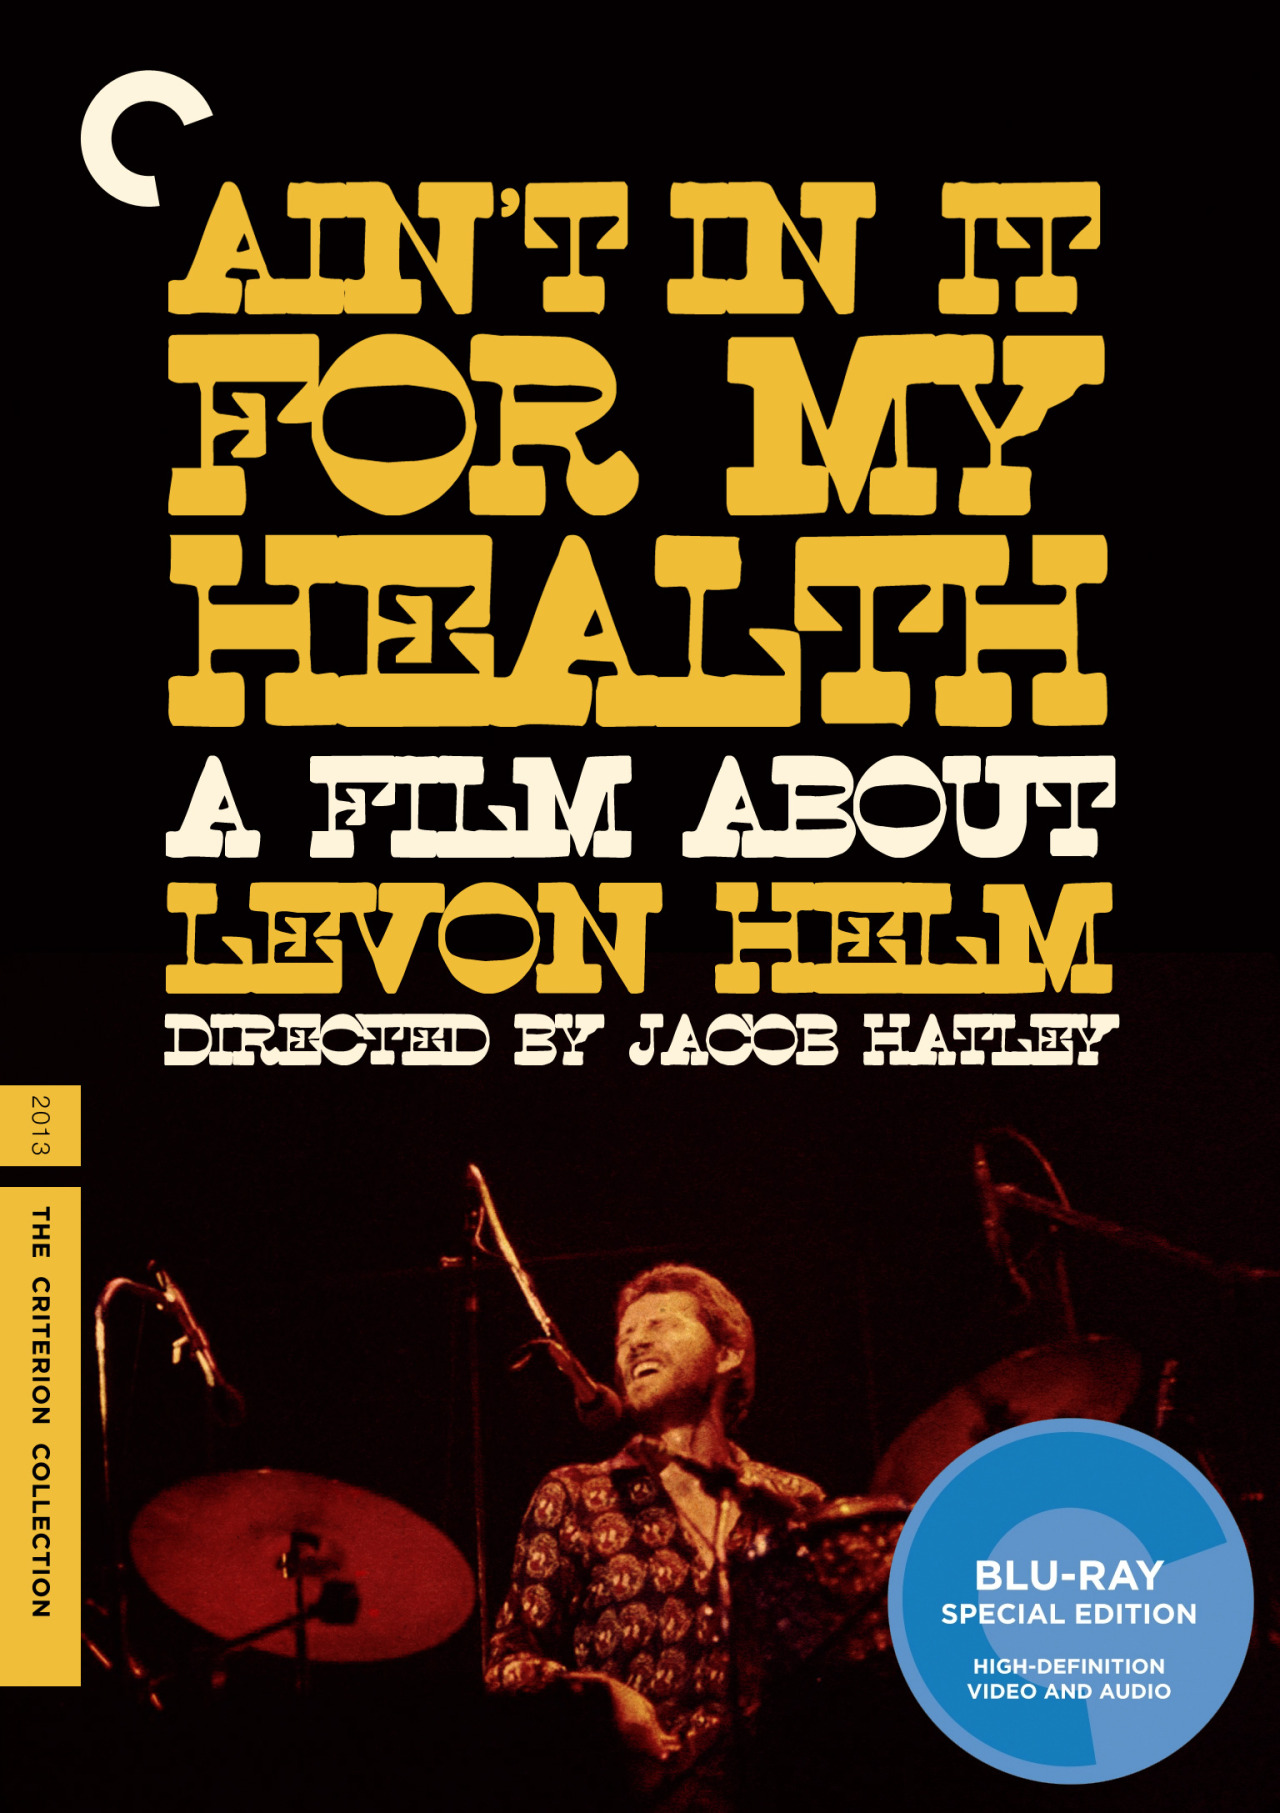 midmarauder:  Criterion Cover for Jacob Hatley's Documentary Film : Ain't In It For My Health : A Film About Levon Helm MM